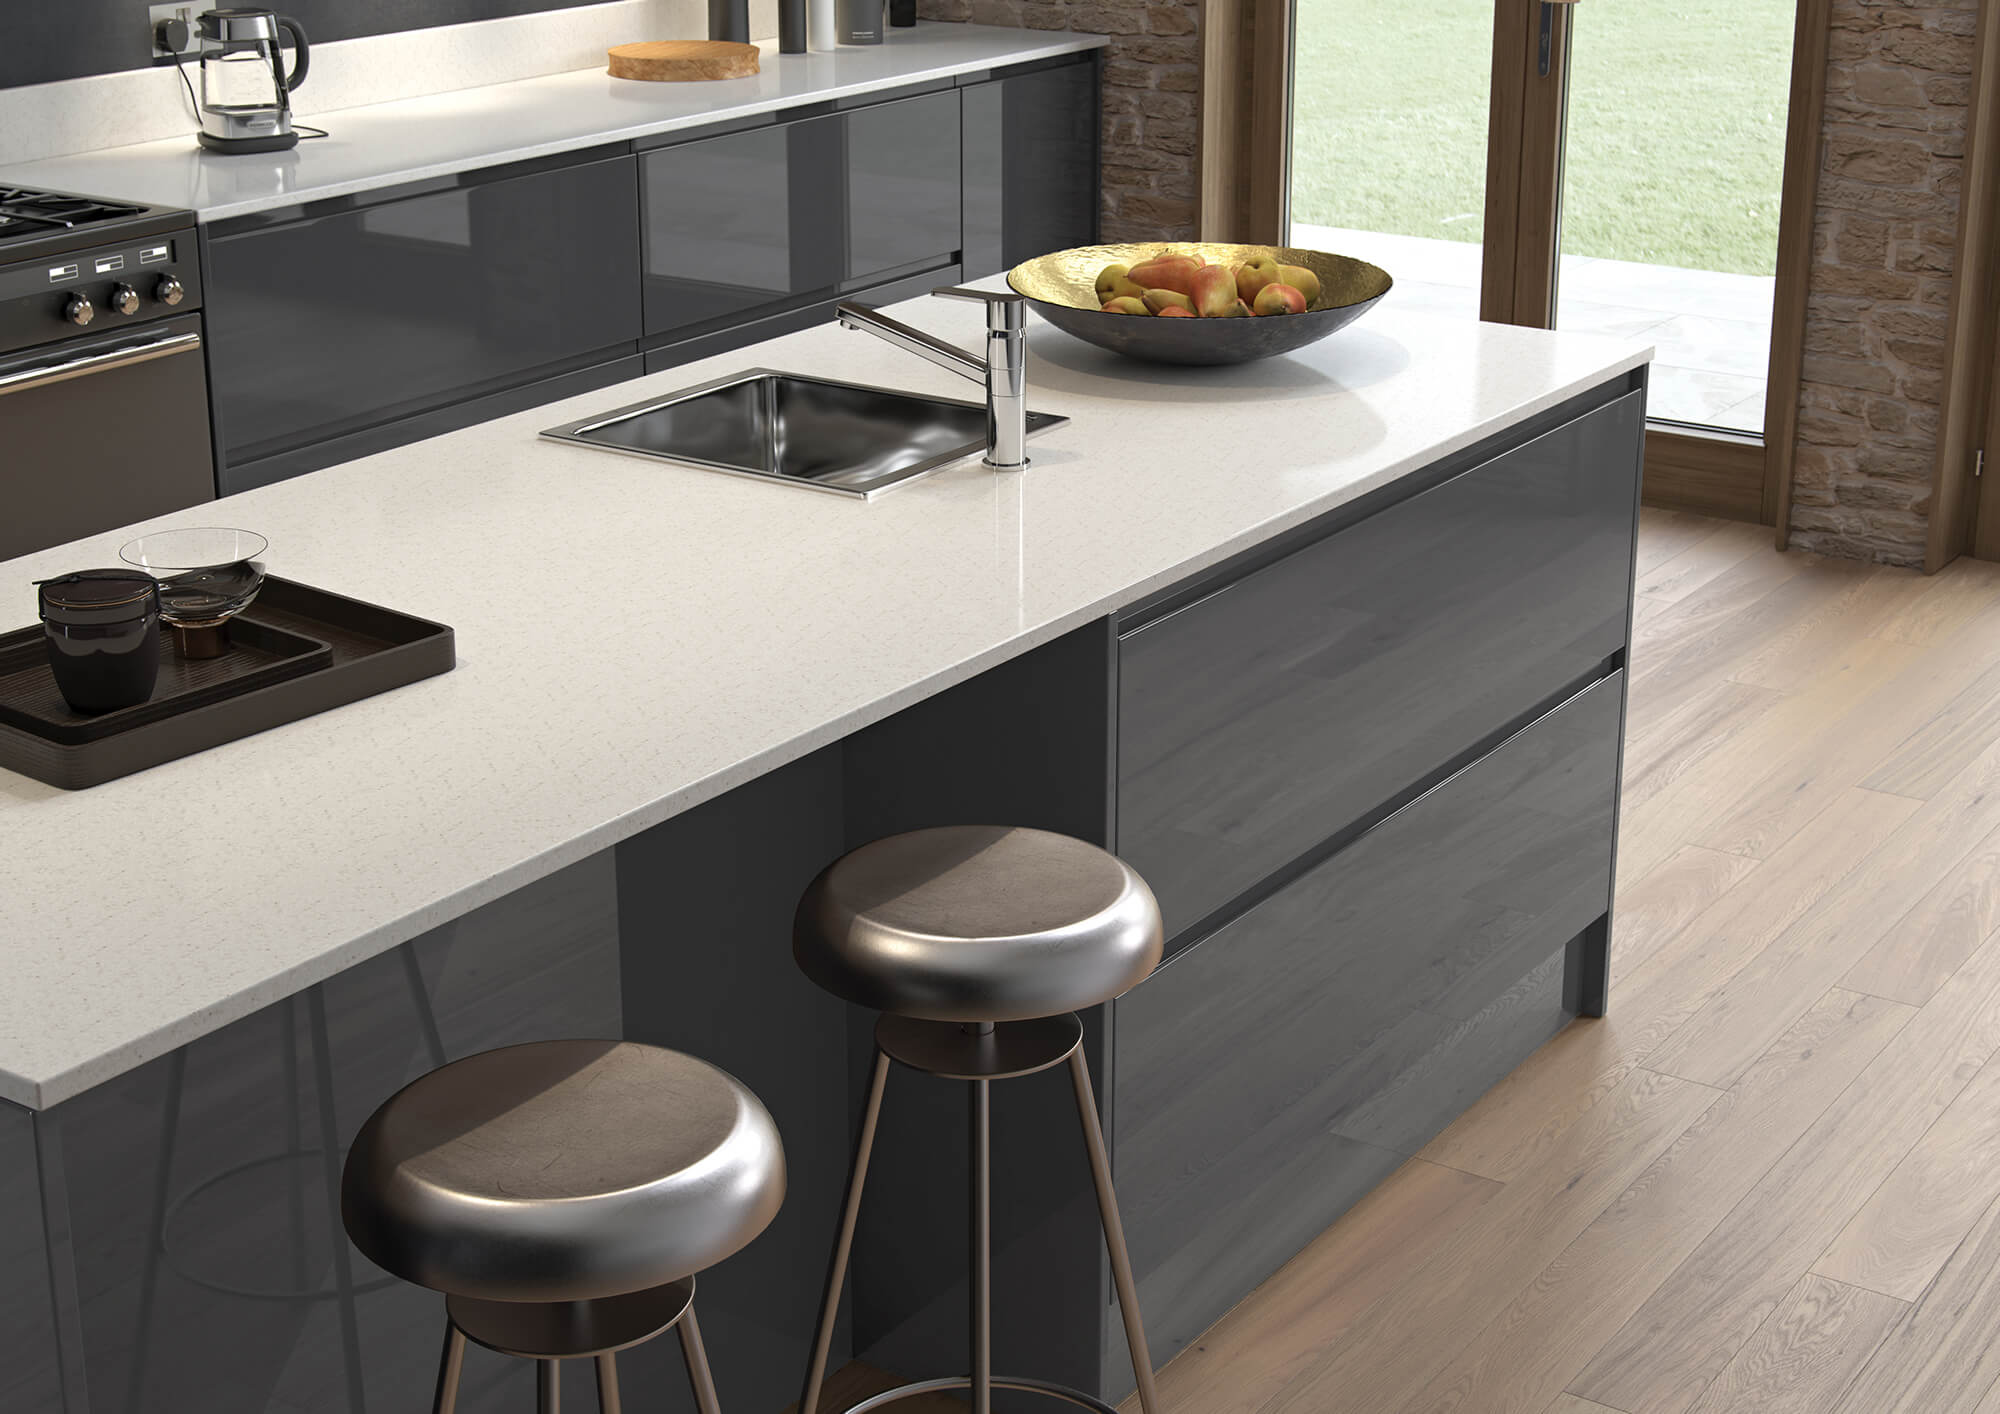 Adore Kitchens - Strada Kitchen Project Image